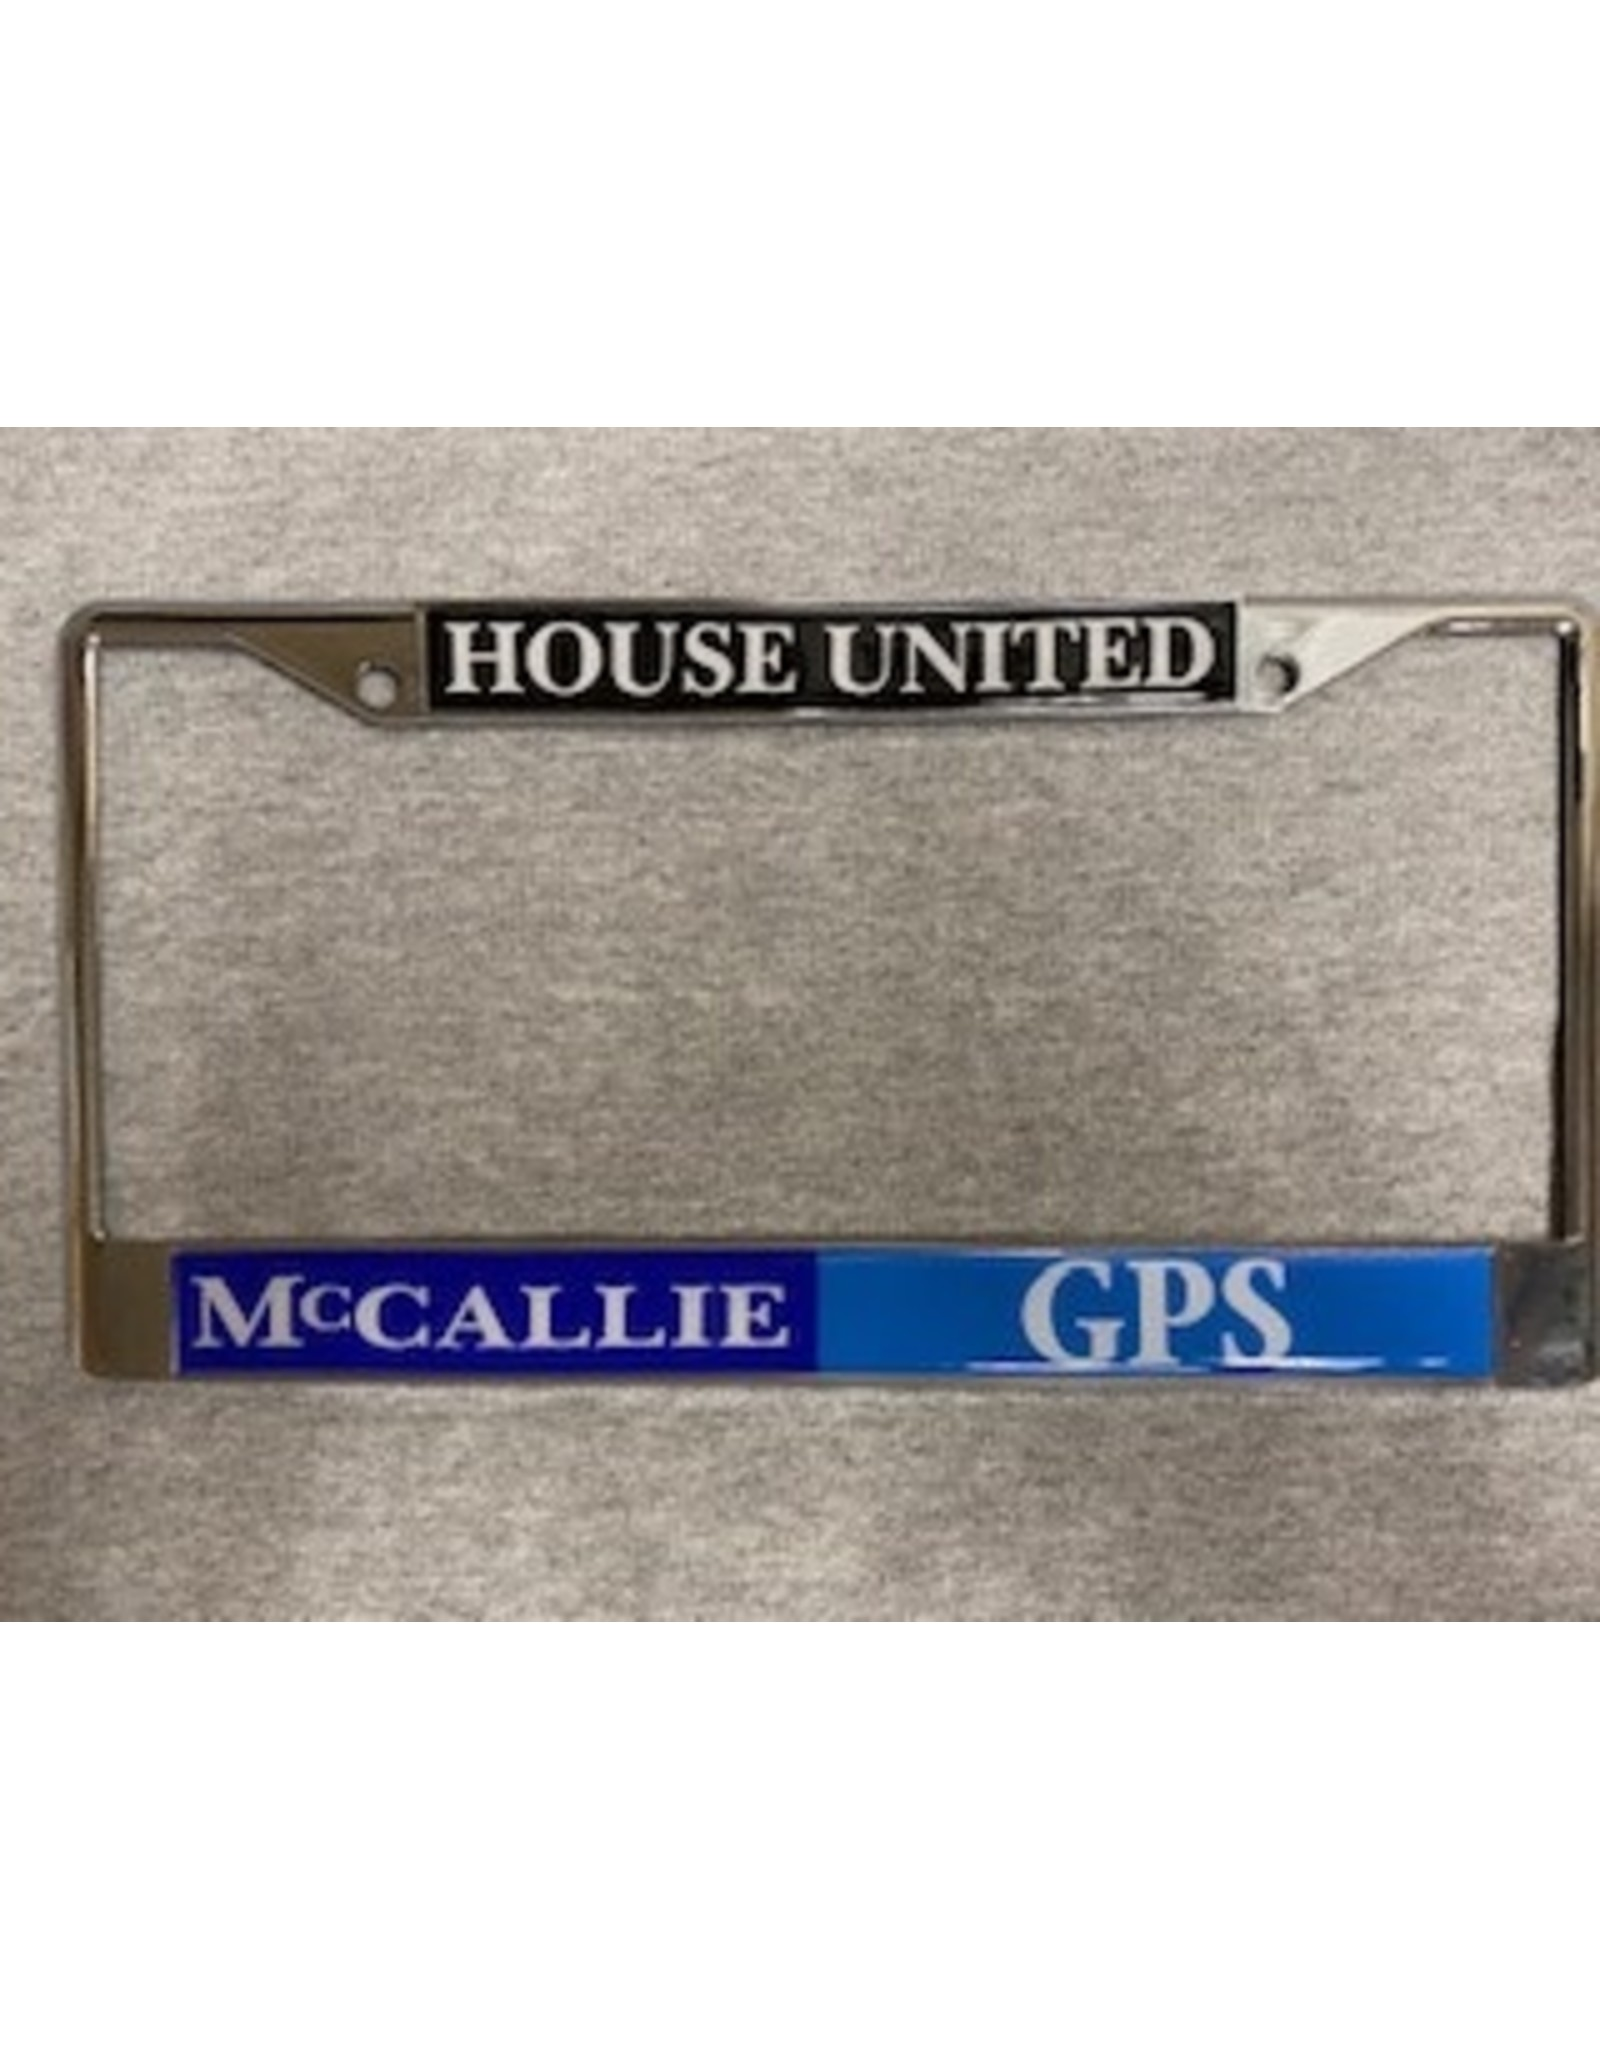 HOUSE UNITED LICENSE TAG FRAME- SILVER